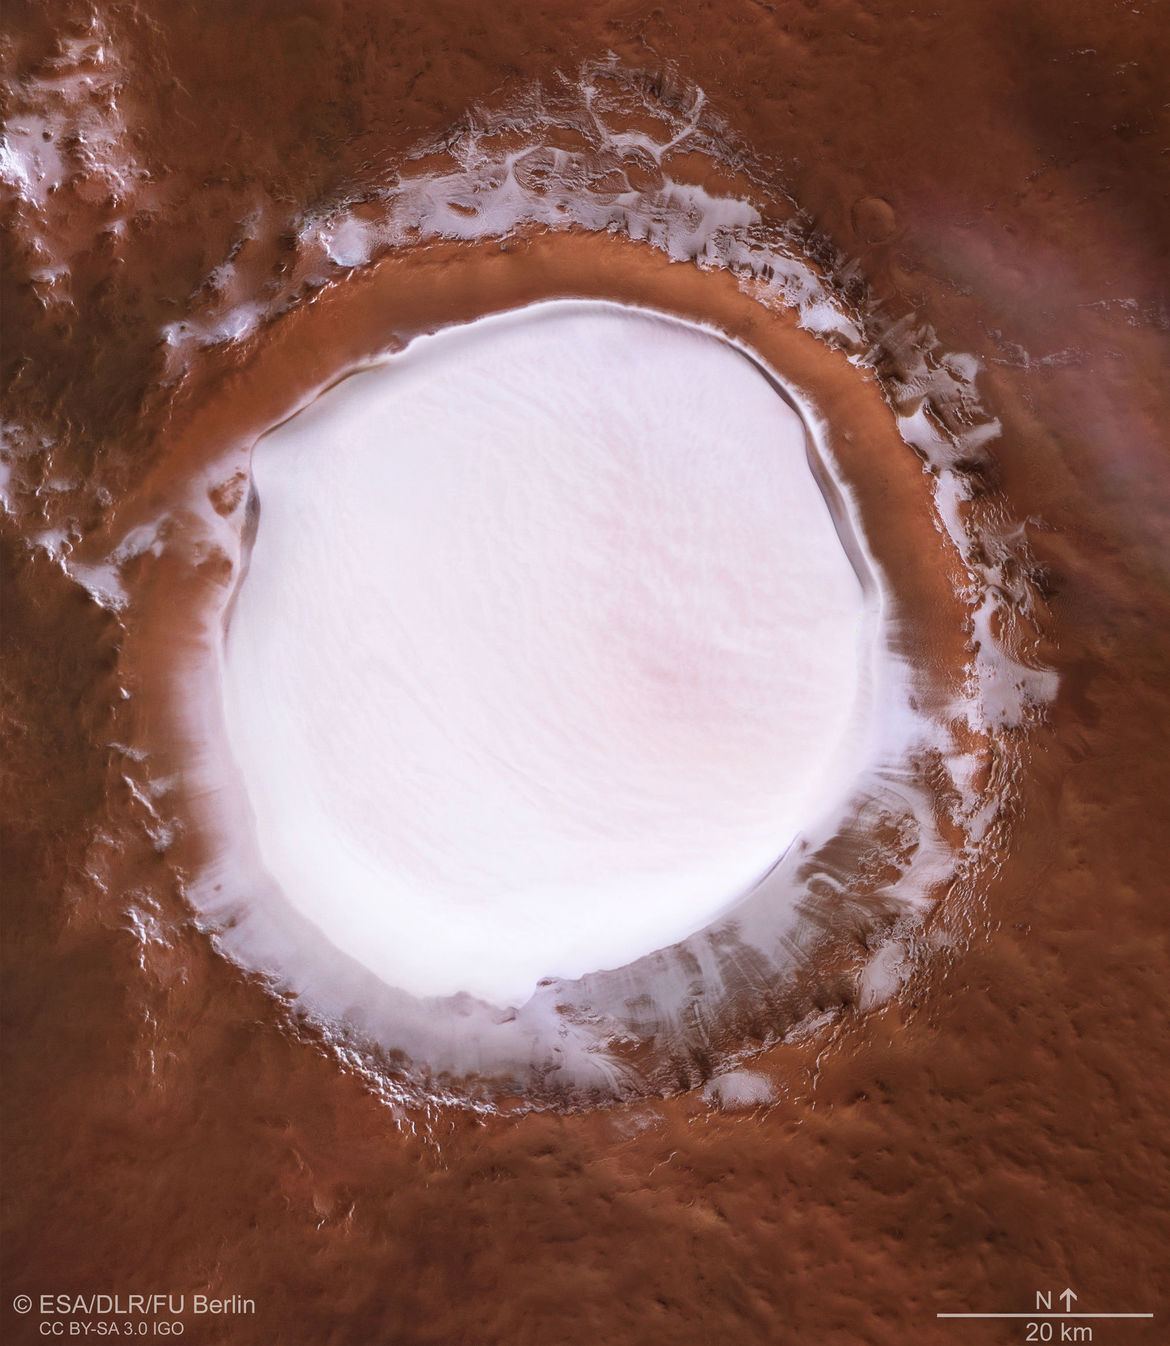 Korolev crater, an 80-km wide impact feature on Mars, is filled with water ice. Credit: ESA/DLR/FU Berlin, CC BY-SA 3.0 IGO